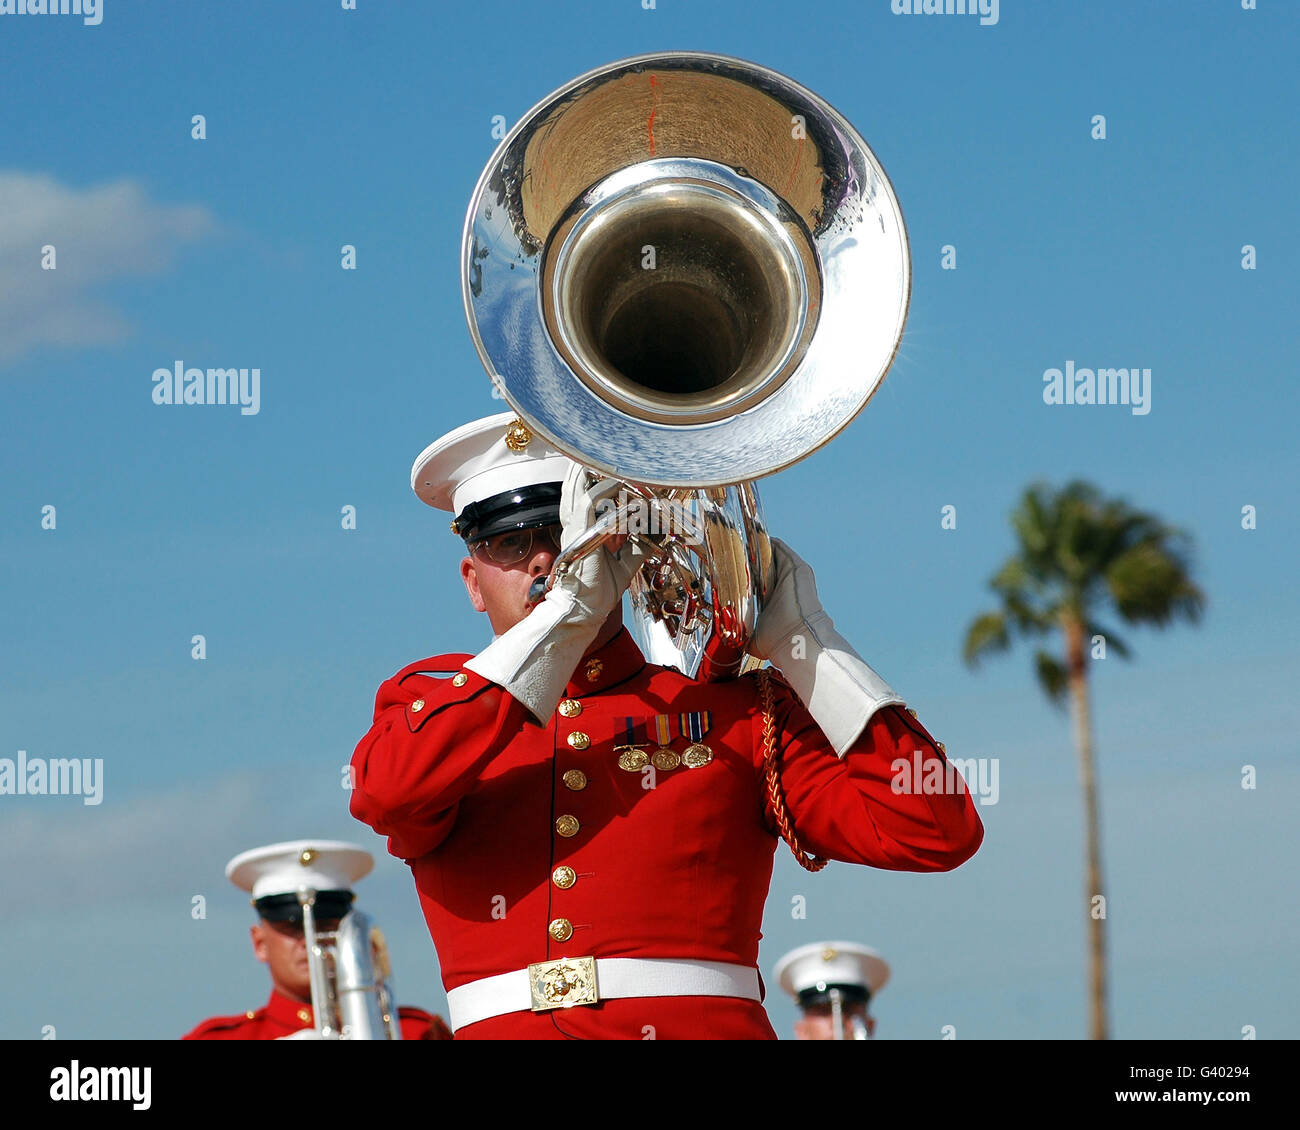 U.S. Marine Corps Drum and Bugle Corps performing. Stock Photo